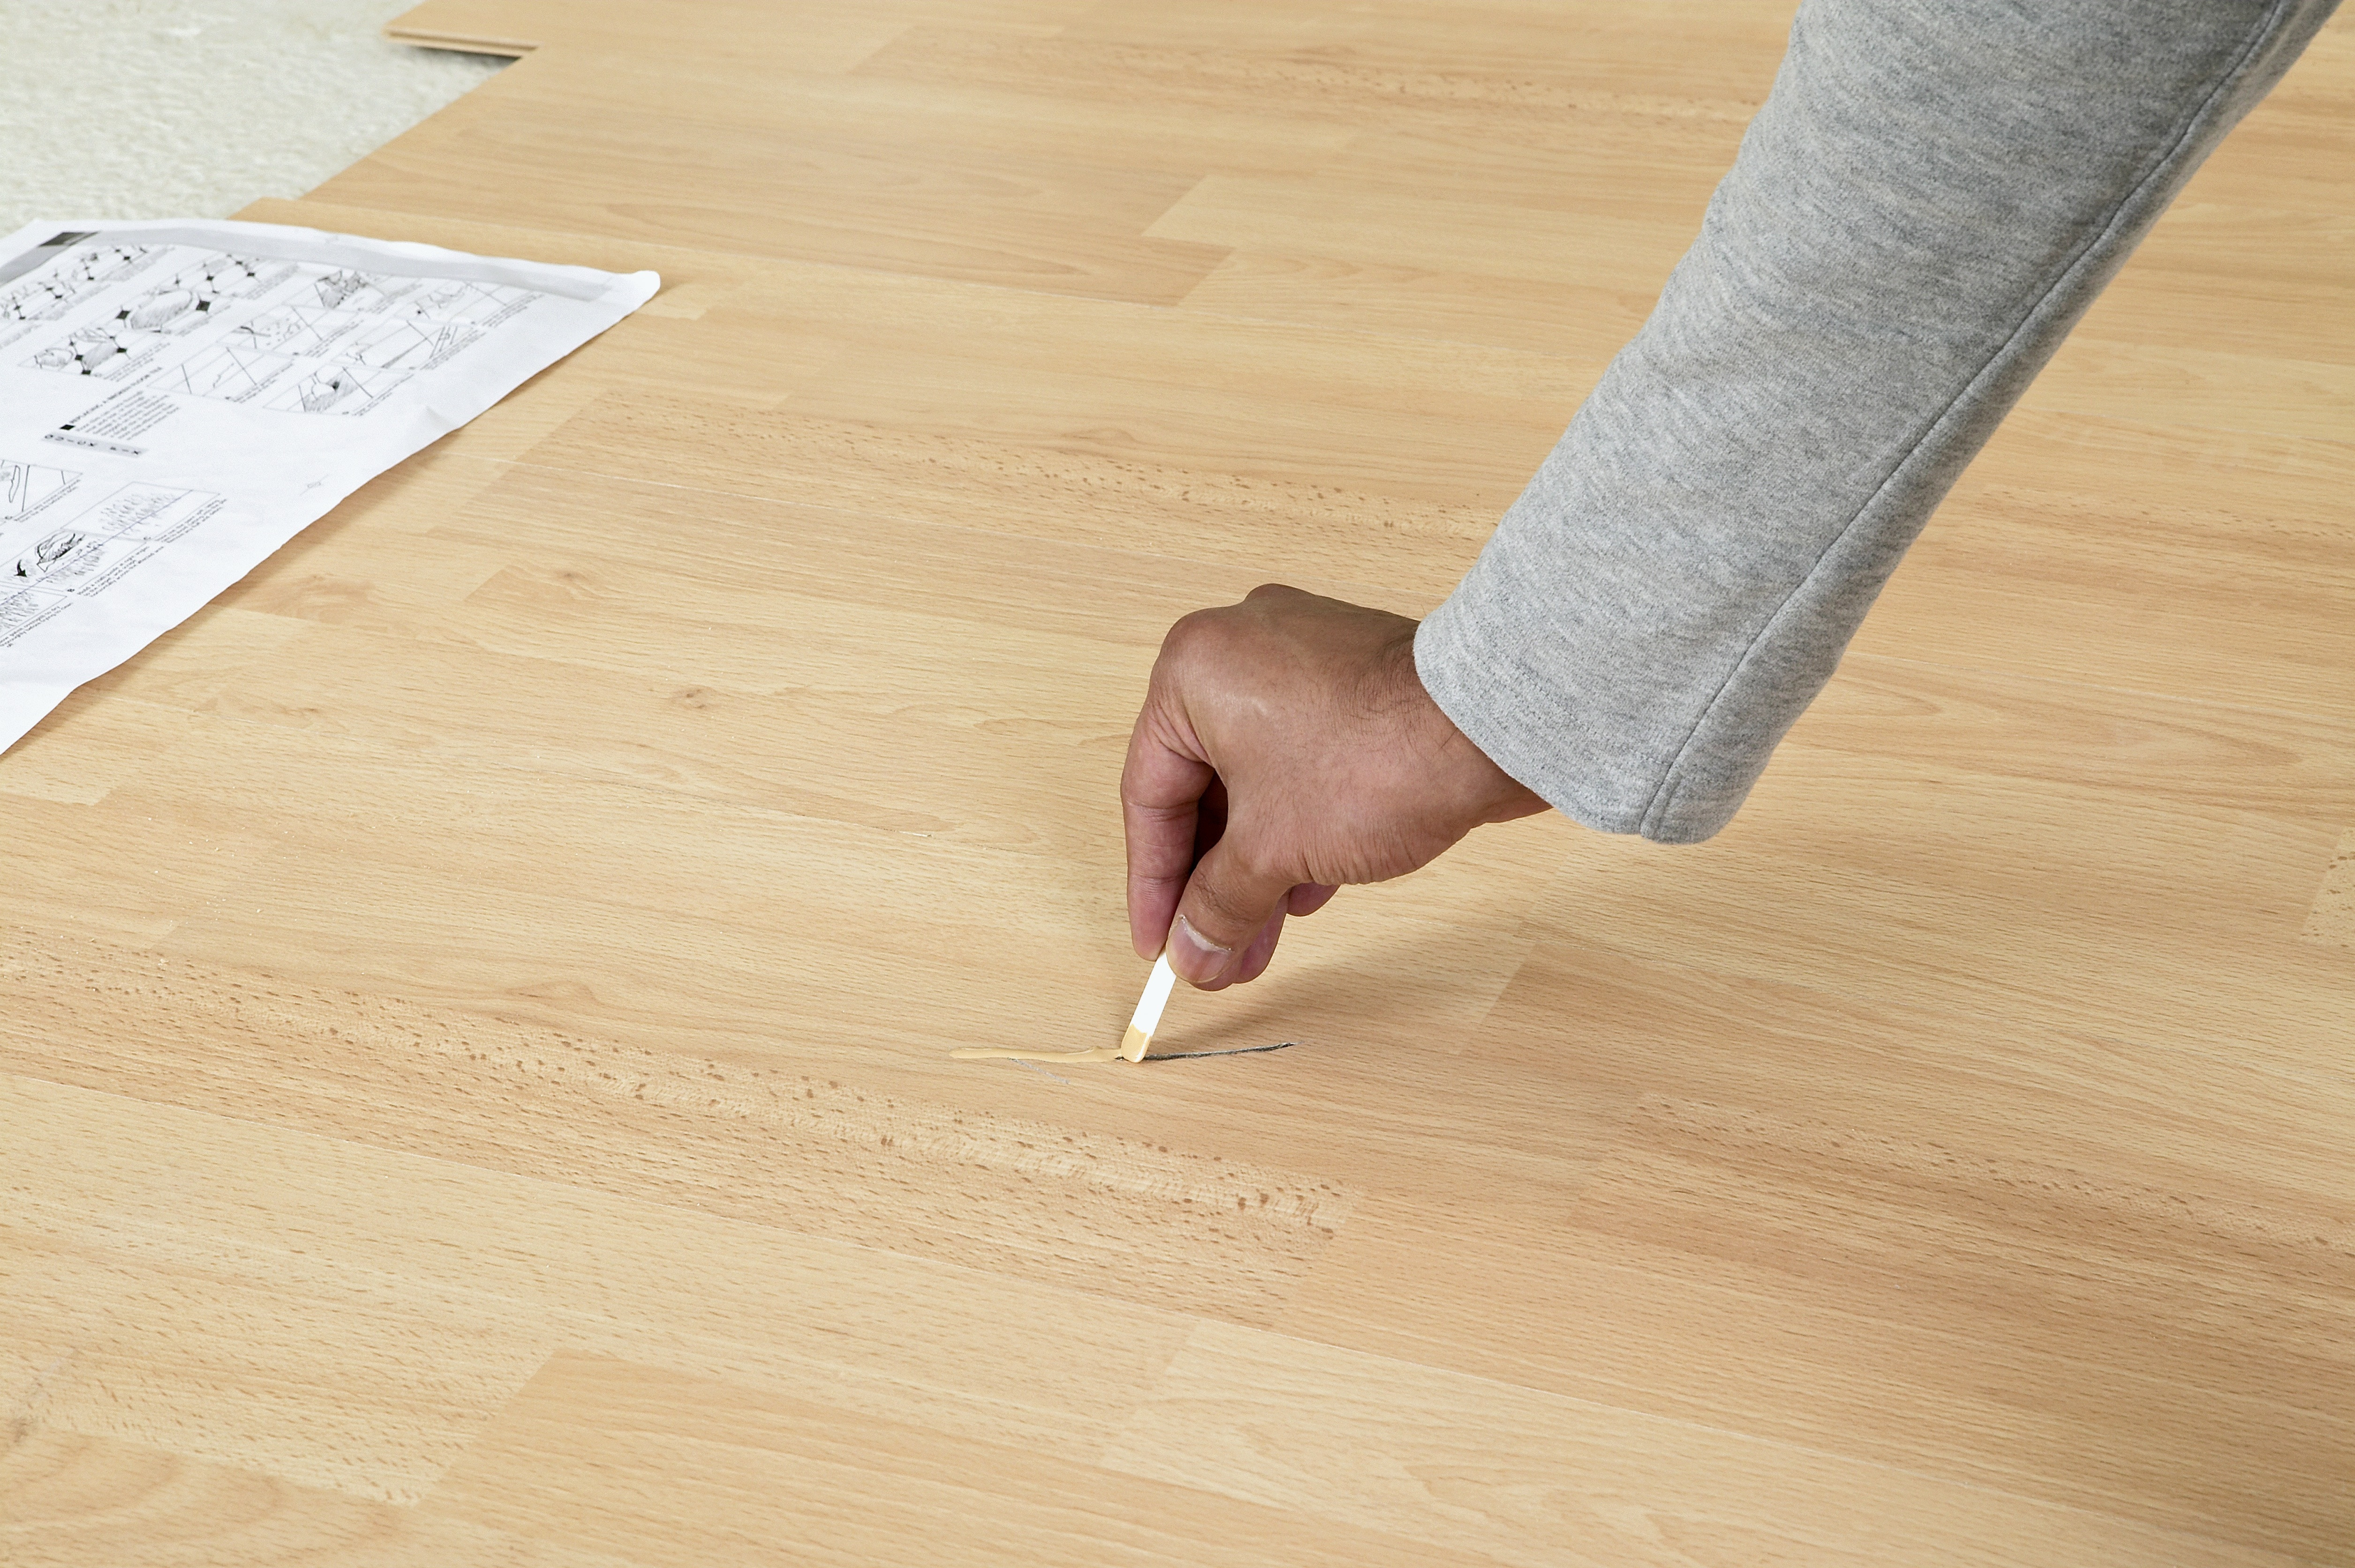 refinishing hardwood floors in sections of jke hardwood flooring page 19 of 27 j k eareckson co is with regard to removing marker from hardwood floors